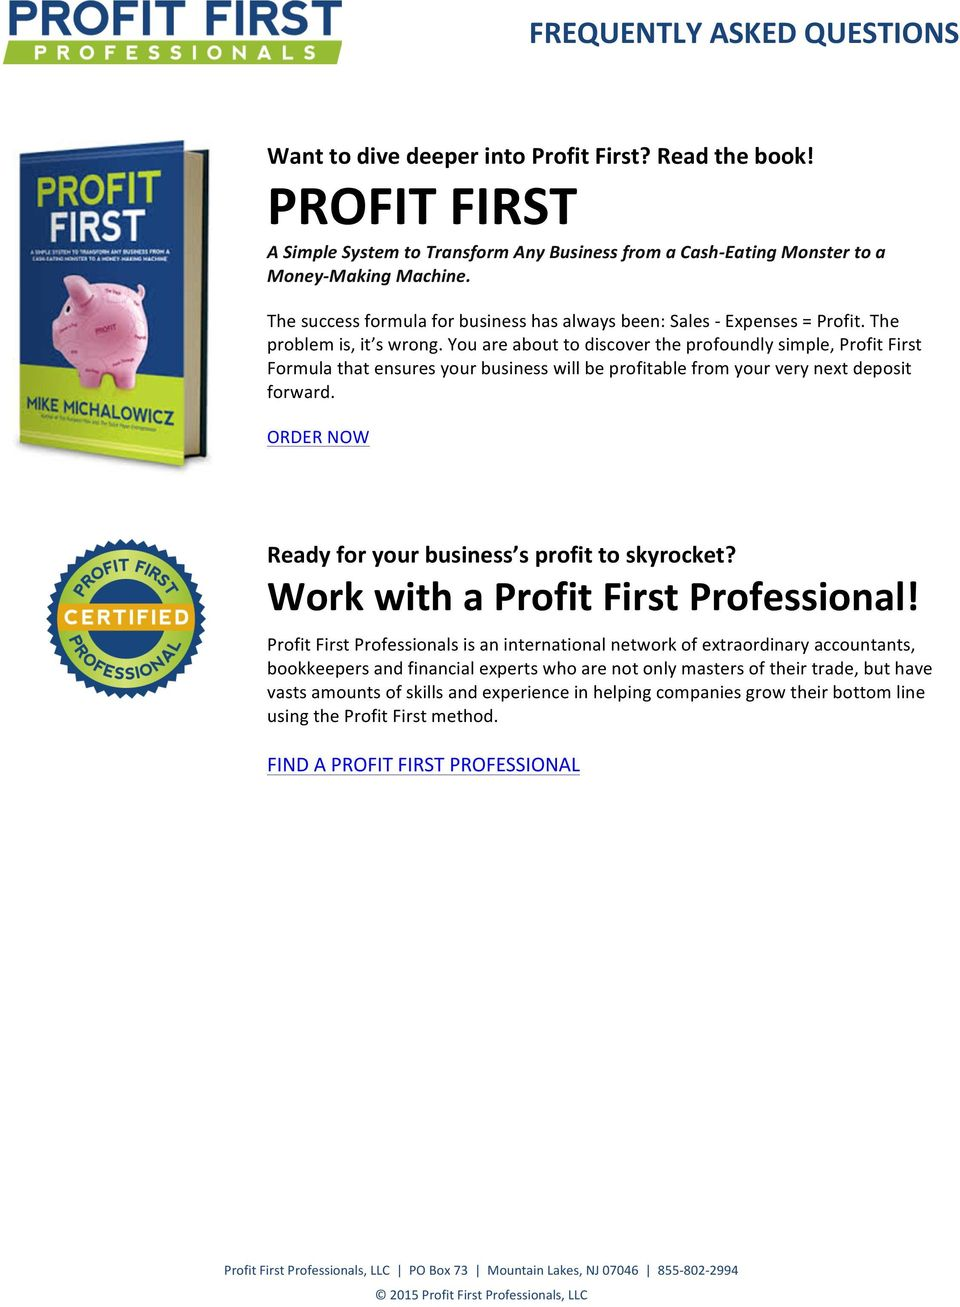 You are about to discover the profoundly simple, Profit First Formula that ensures your business will be profitable from your very next deposit forward.